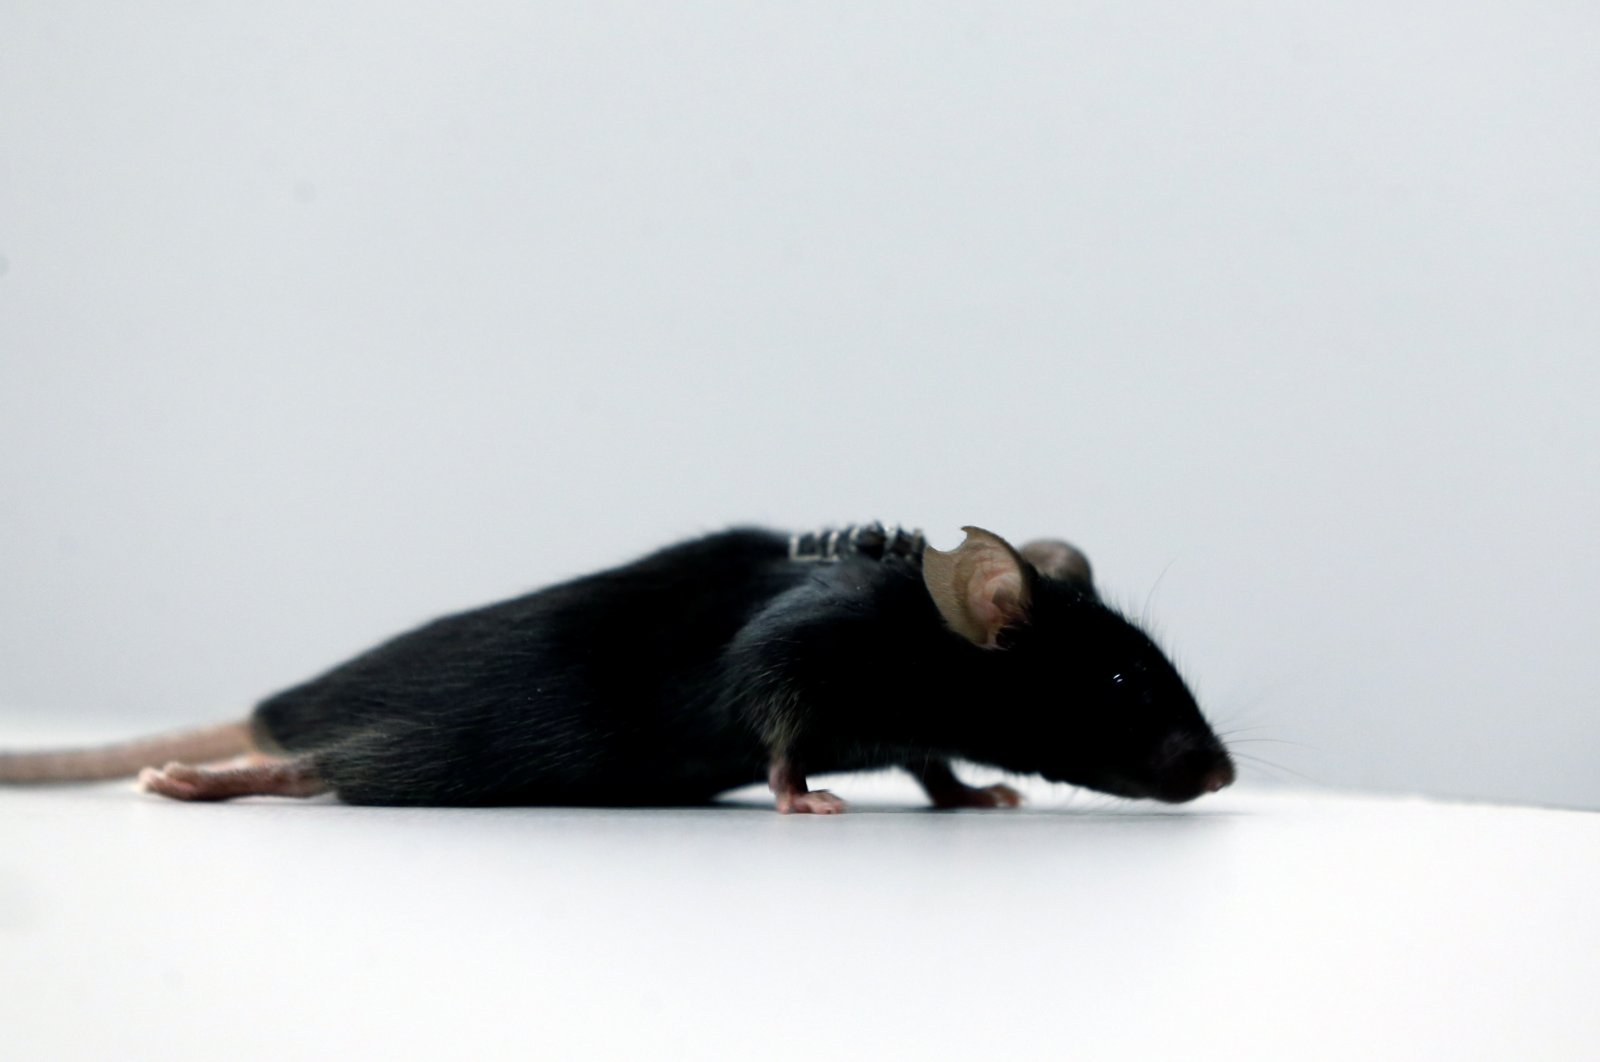 A paralyzed mouse at a lab at Ruhr University, where scientists discovered a way to restore the ability to walk in mice that had been paralyzed after a complete spinal cord injury, in Bochum, Germany, Jan. 21, 2021. (Reuters Photo)